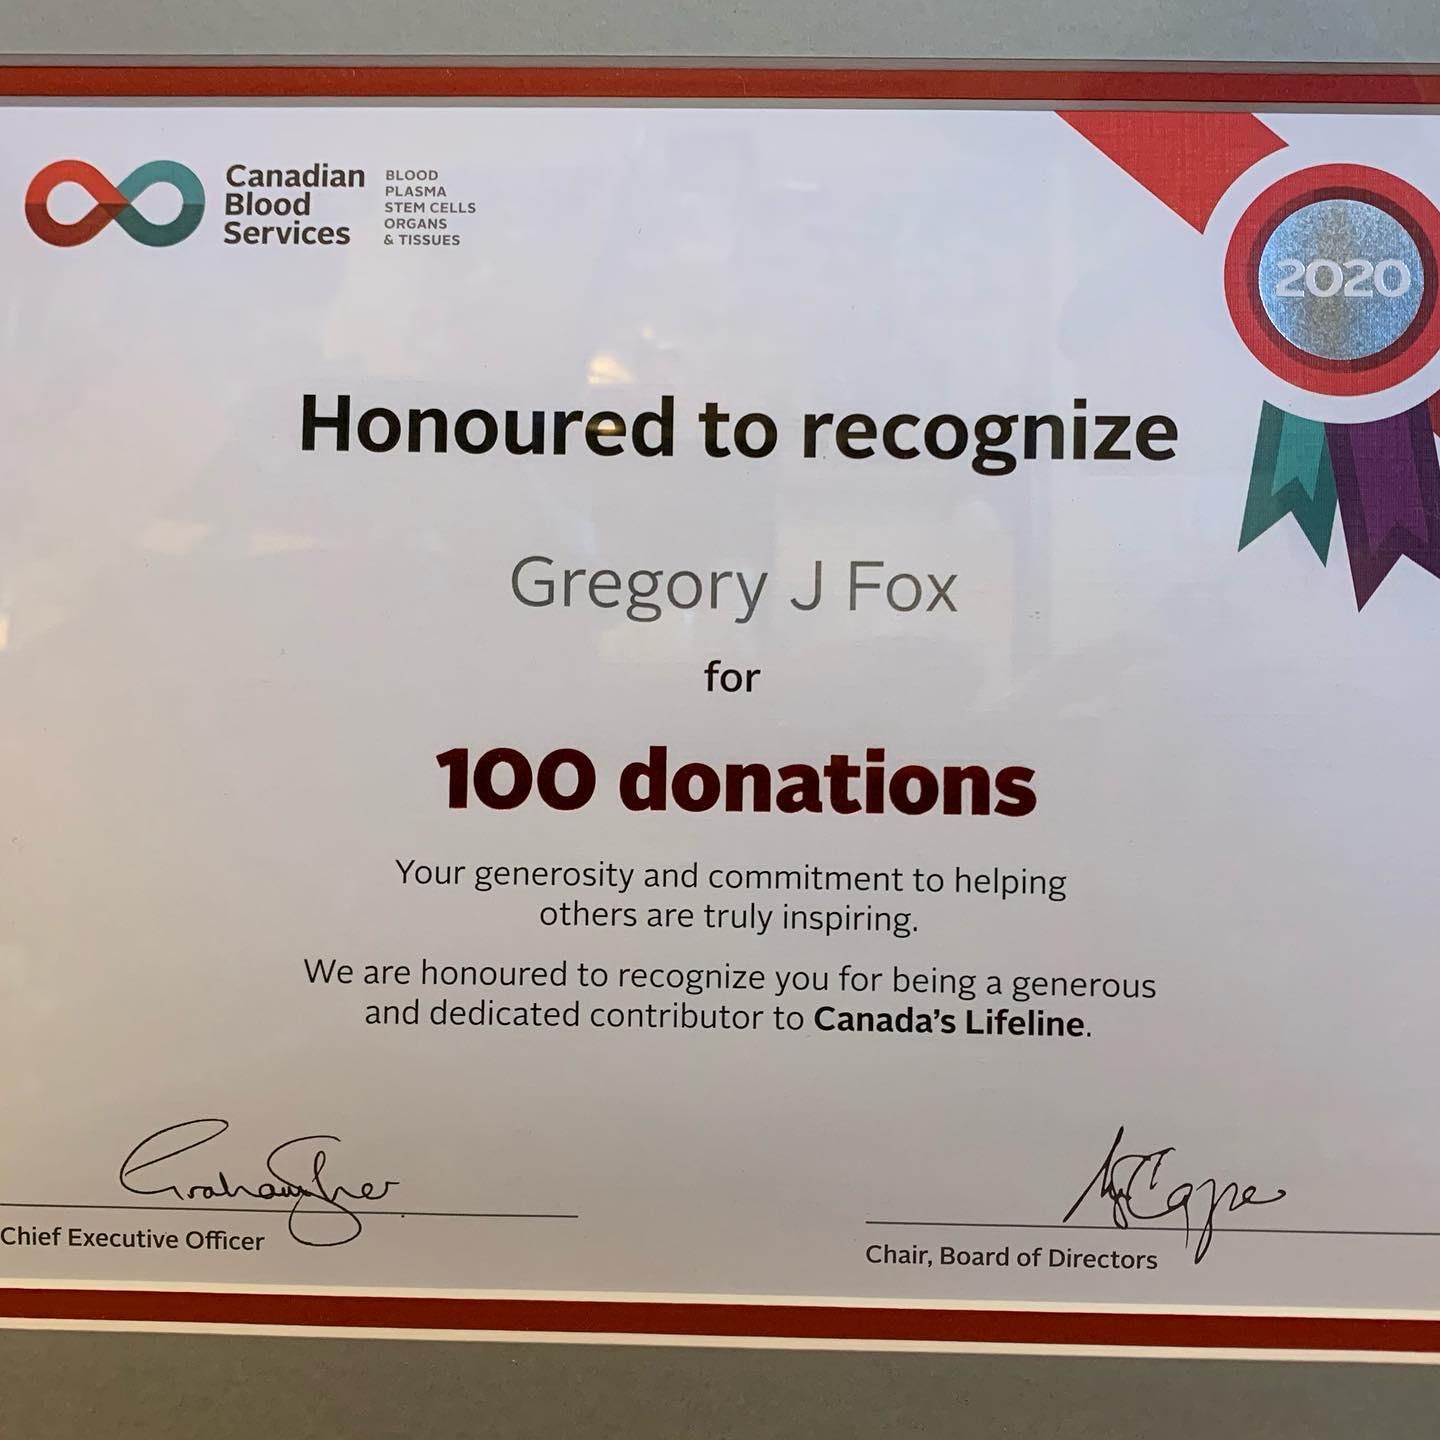 There are a few things in life that I am quite proud of, and this is definitely one of them. I started regularly donating in my early 20s and don't plan on stopping any time soon. #blooddonor #itsinyoutogove #milestone